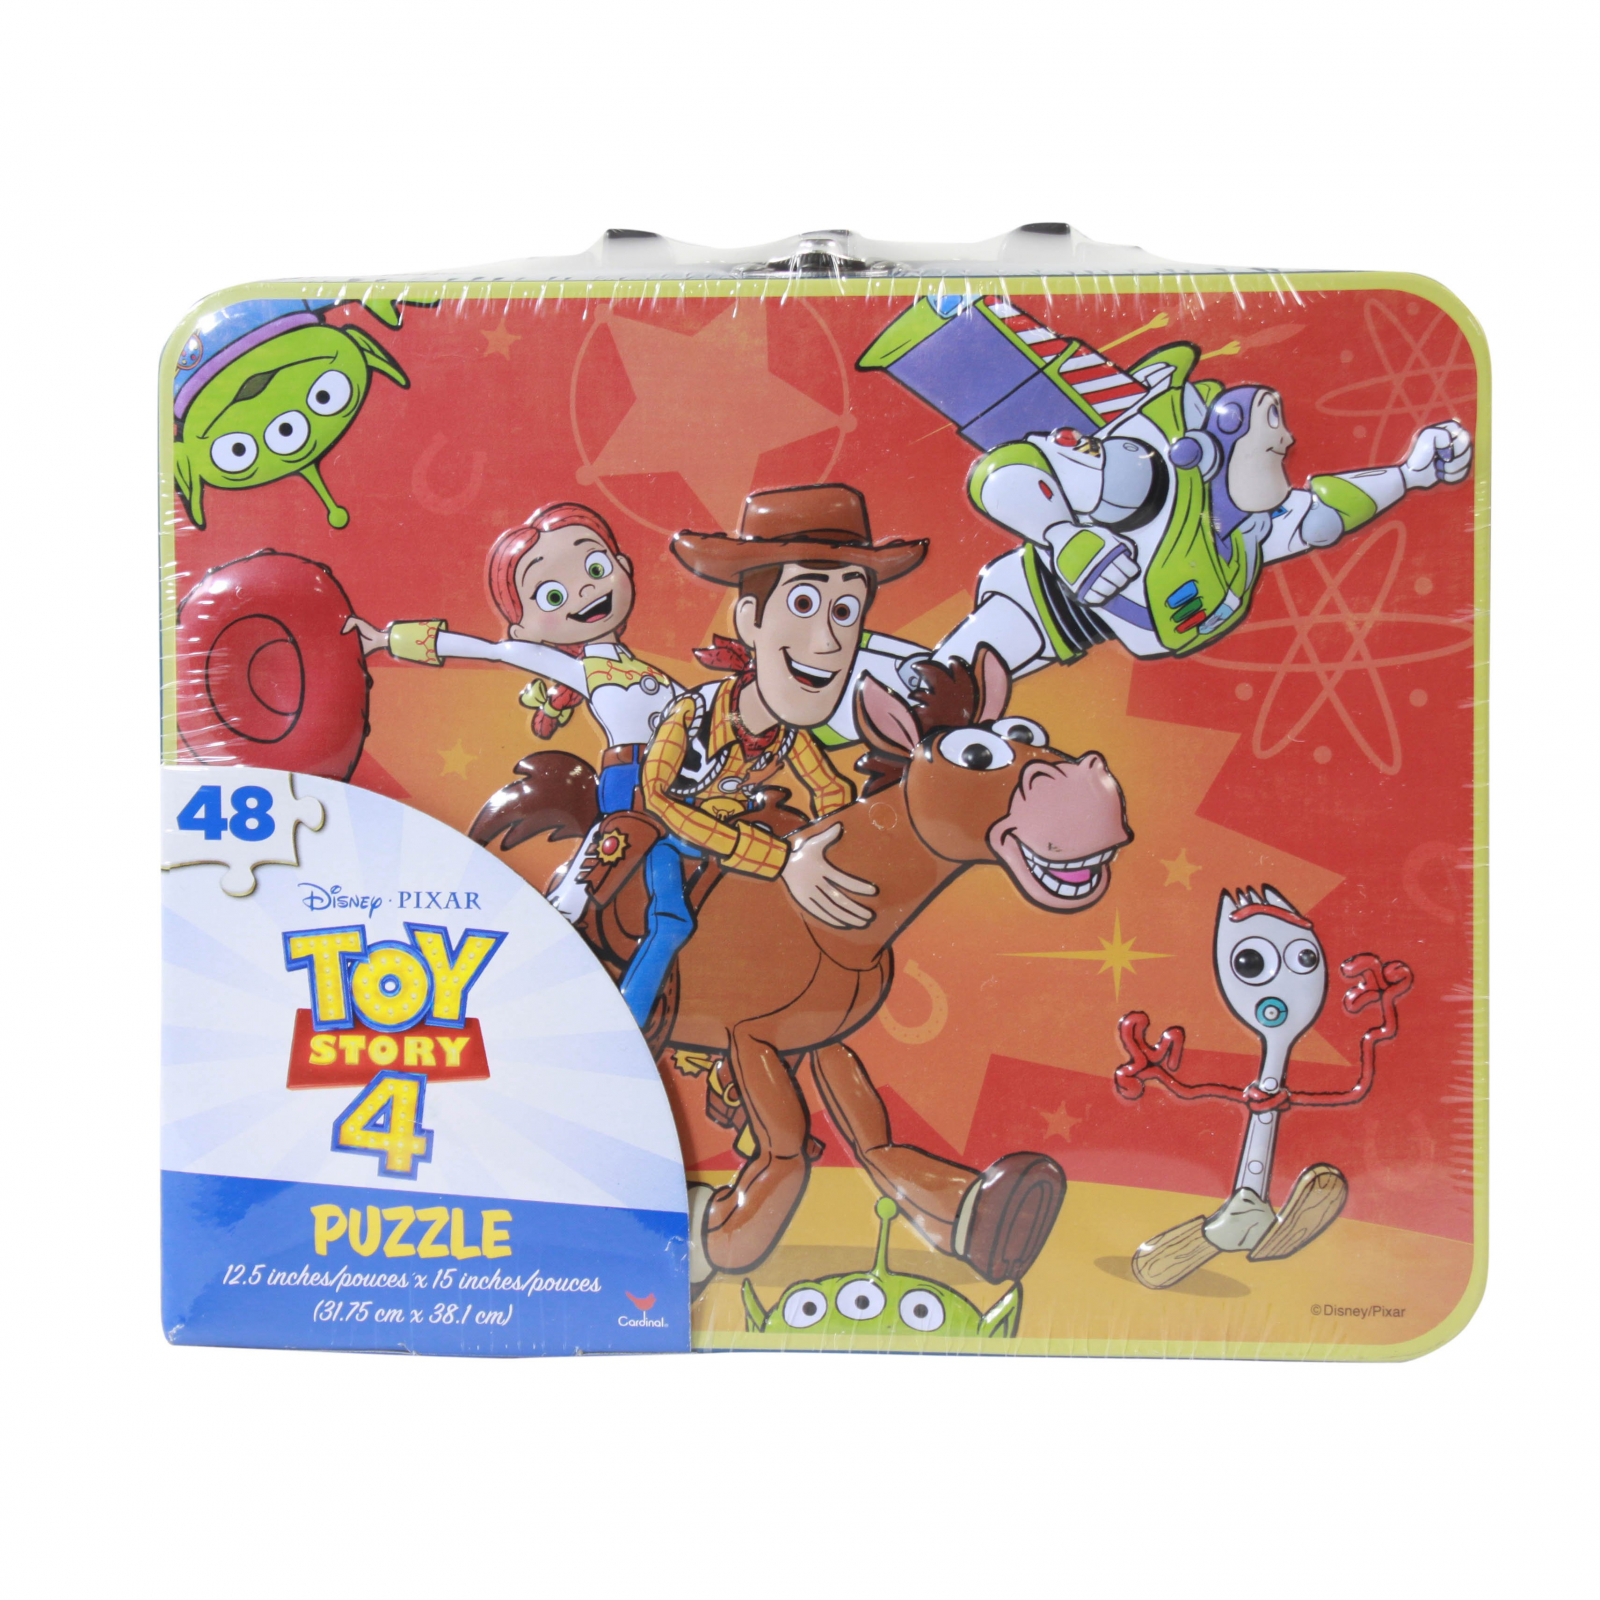 Disney Toy Story 4 Woody Buzz Jessie Forky Puzzle Lunch Box